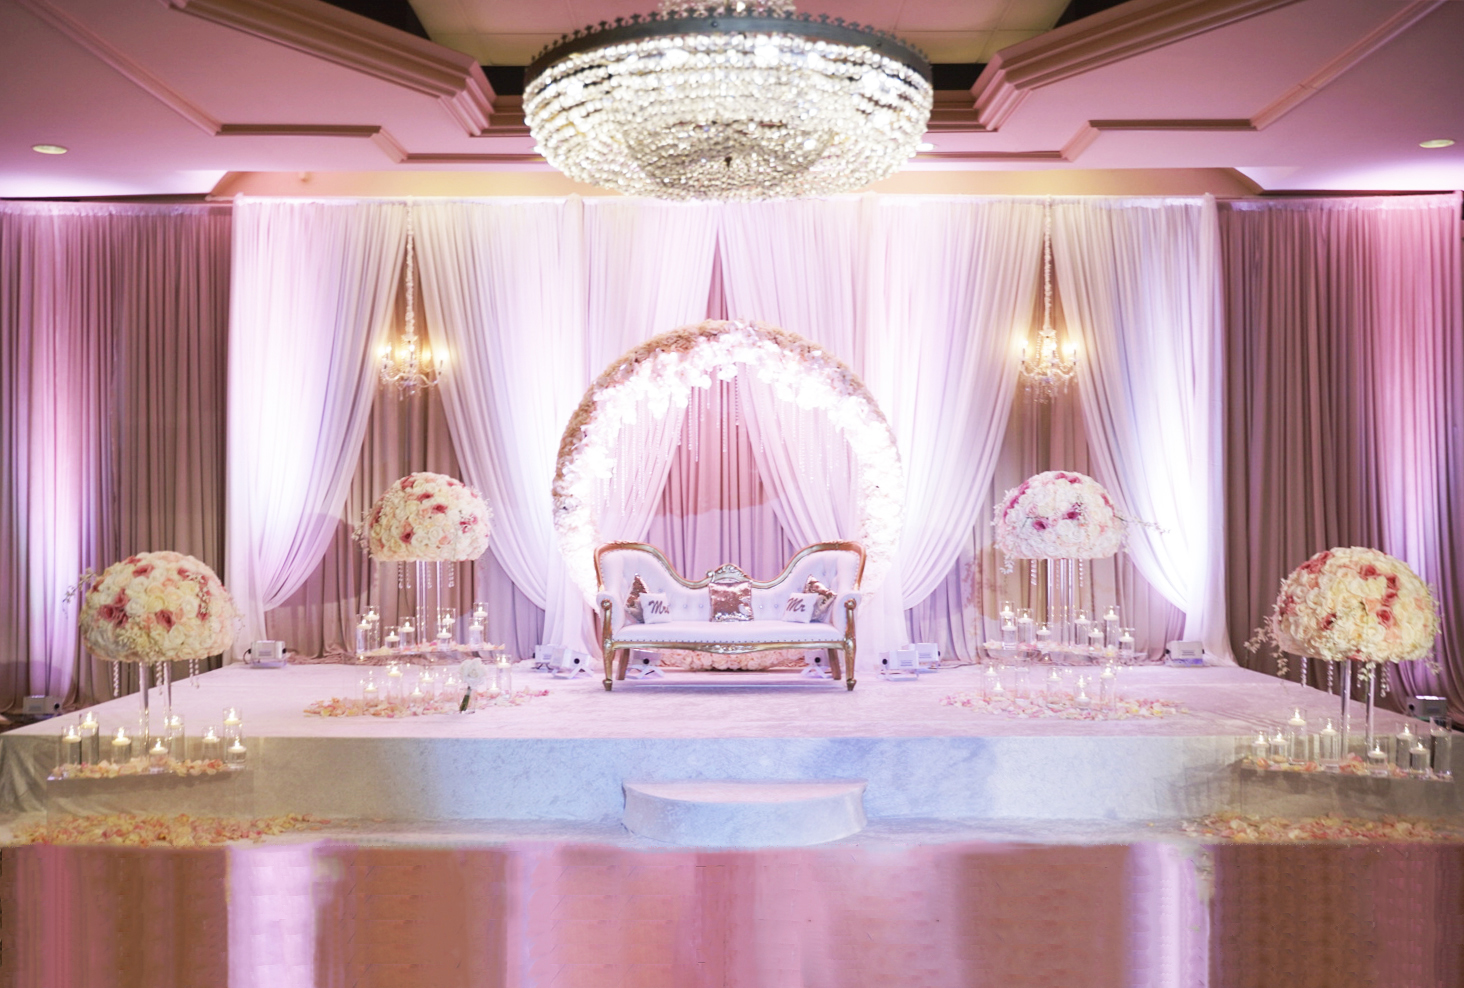 Floral Ring Stage Decor.jpg